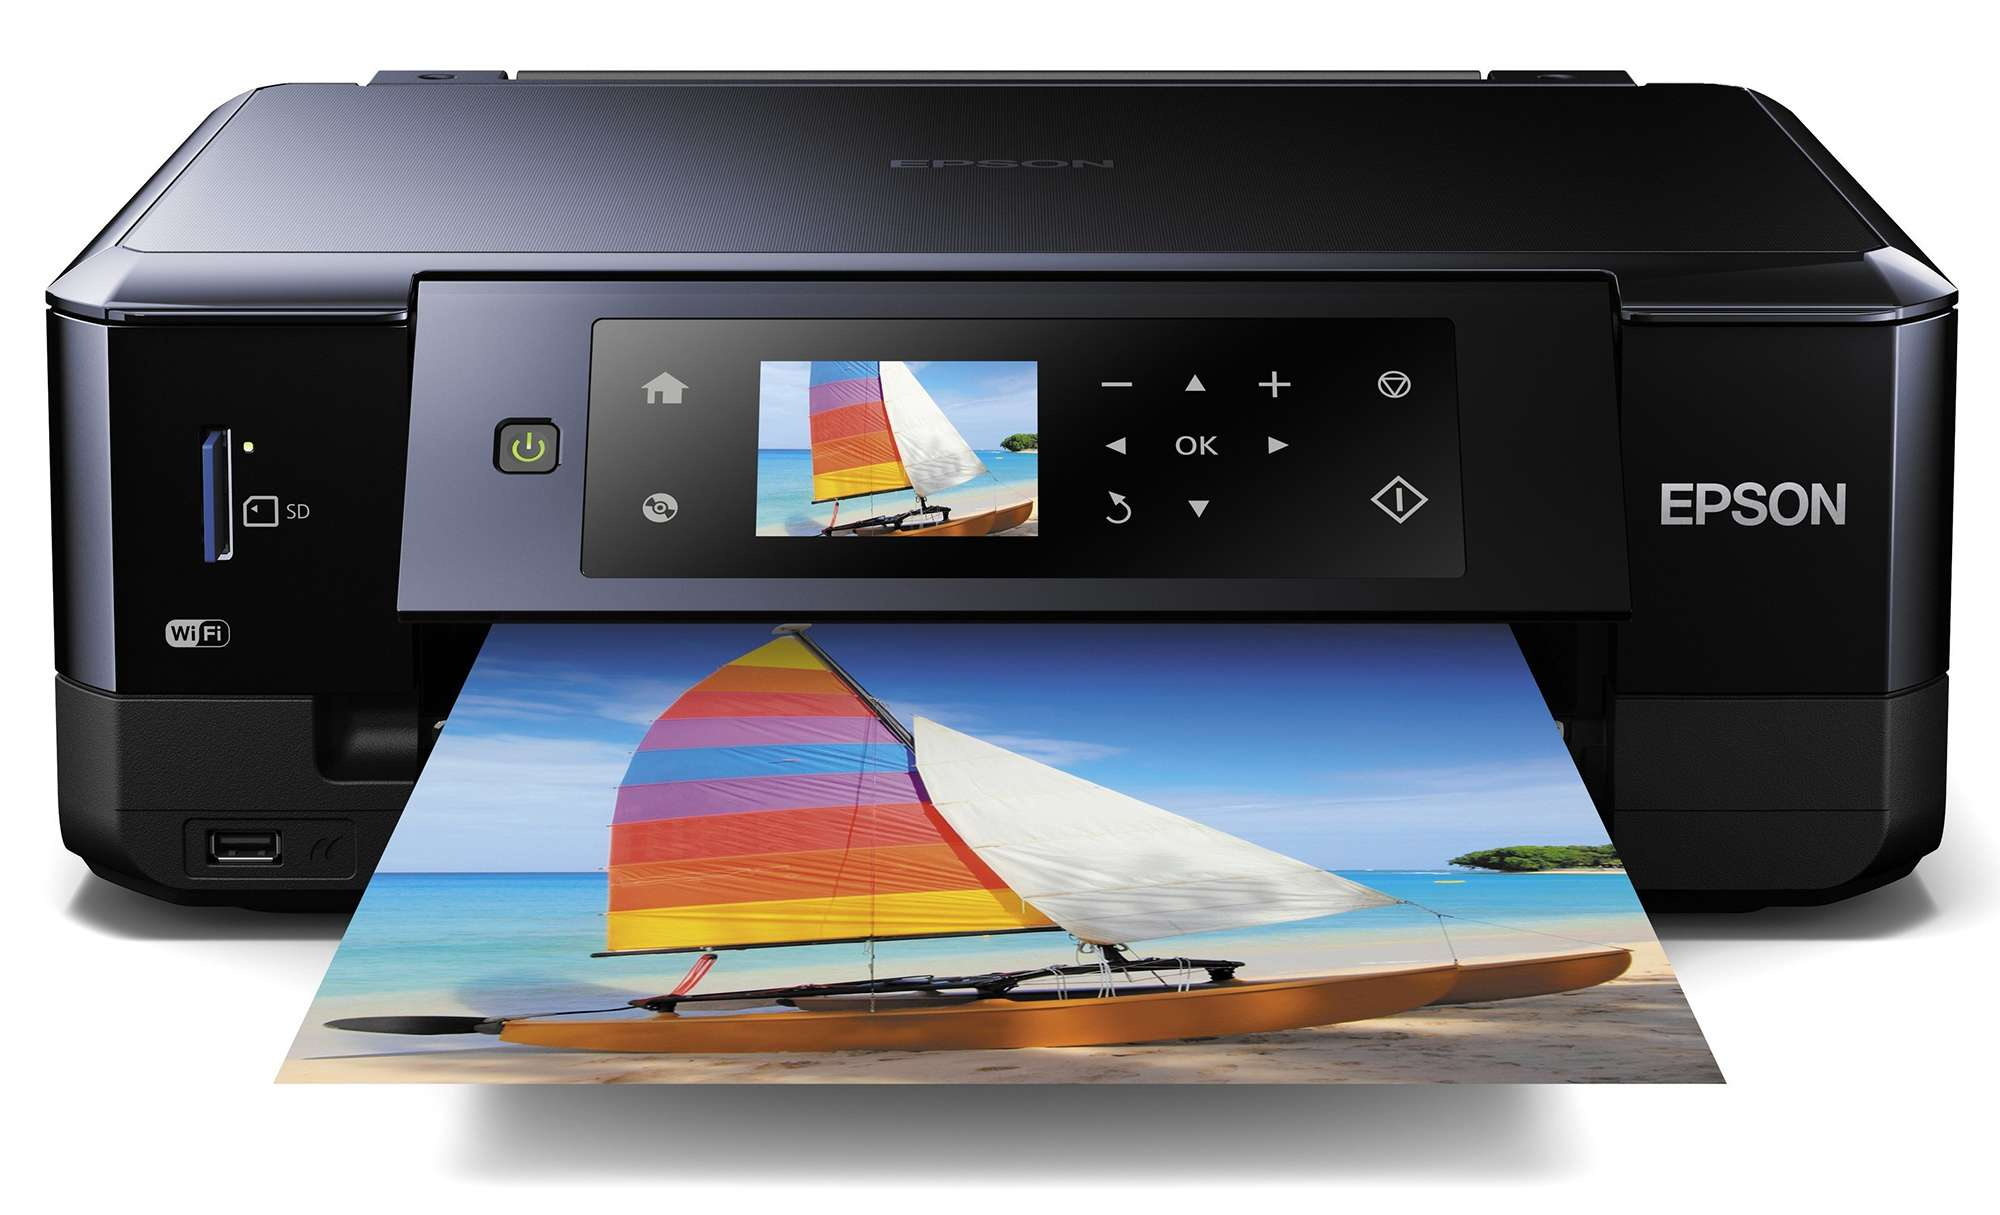 Closeup of a printer holding an image of a multi-colored windsurfer